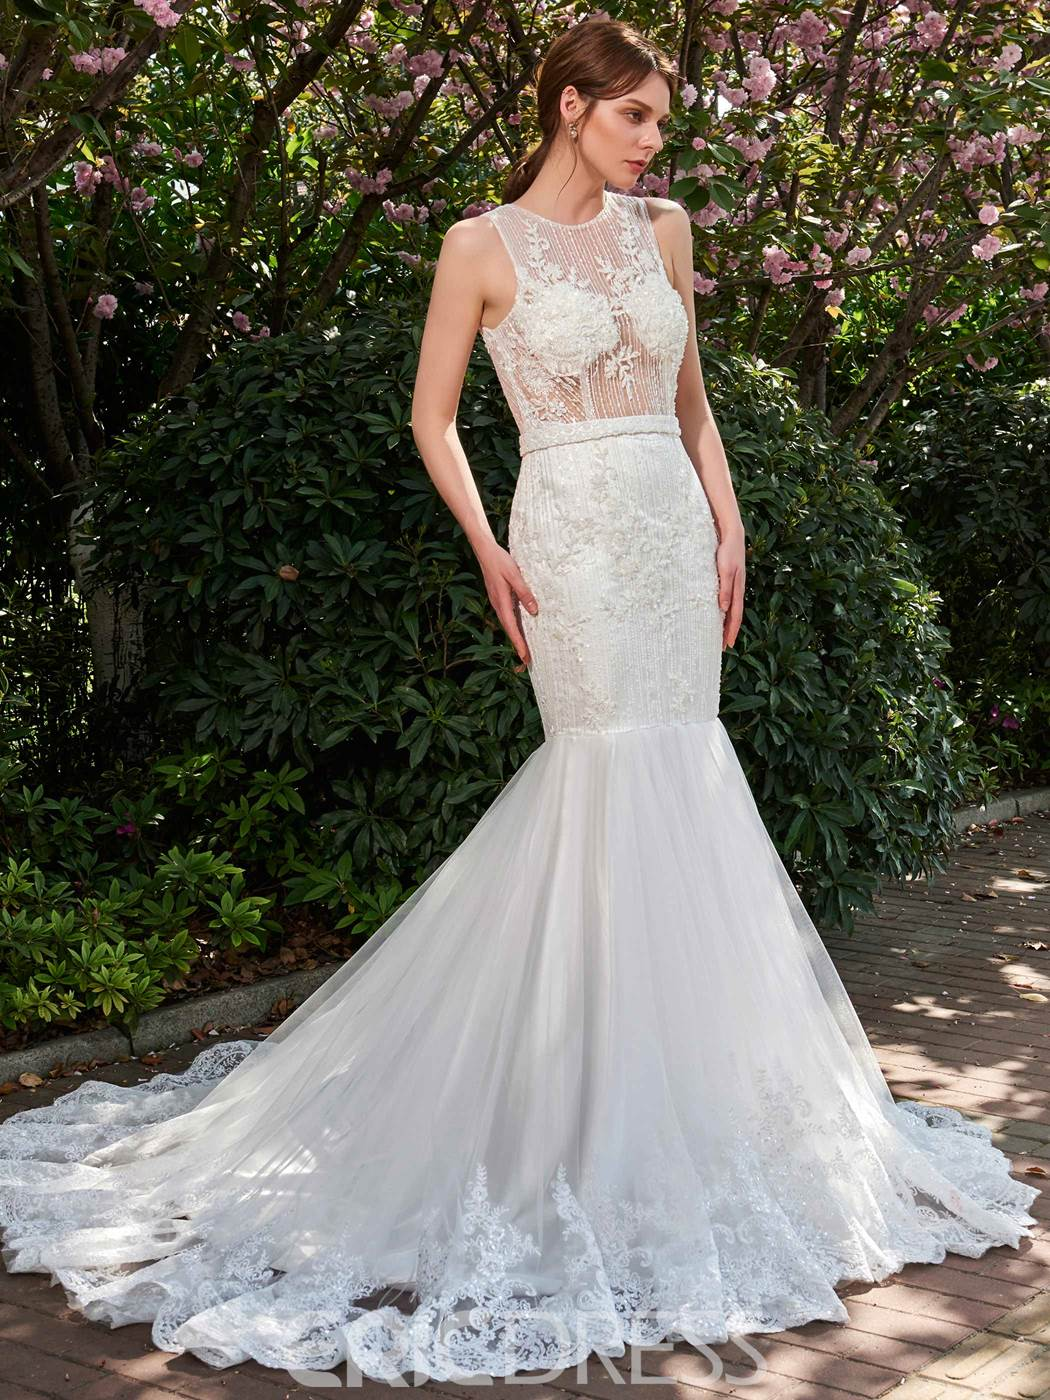 Ericdress Mermaid Illusion Neckline Appliques Beaded Wedding Dress